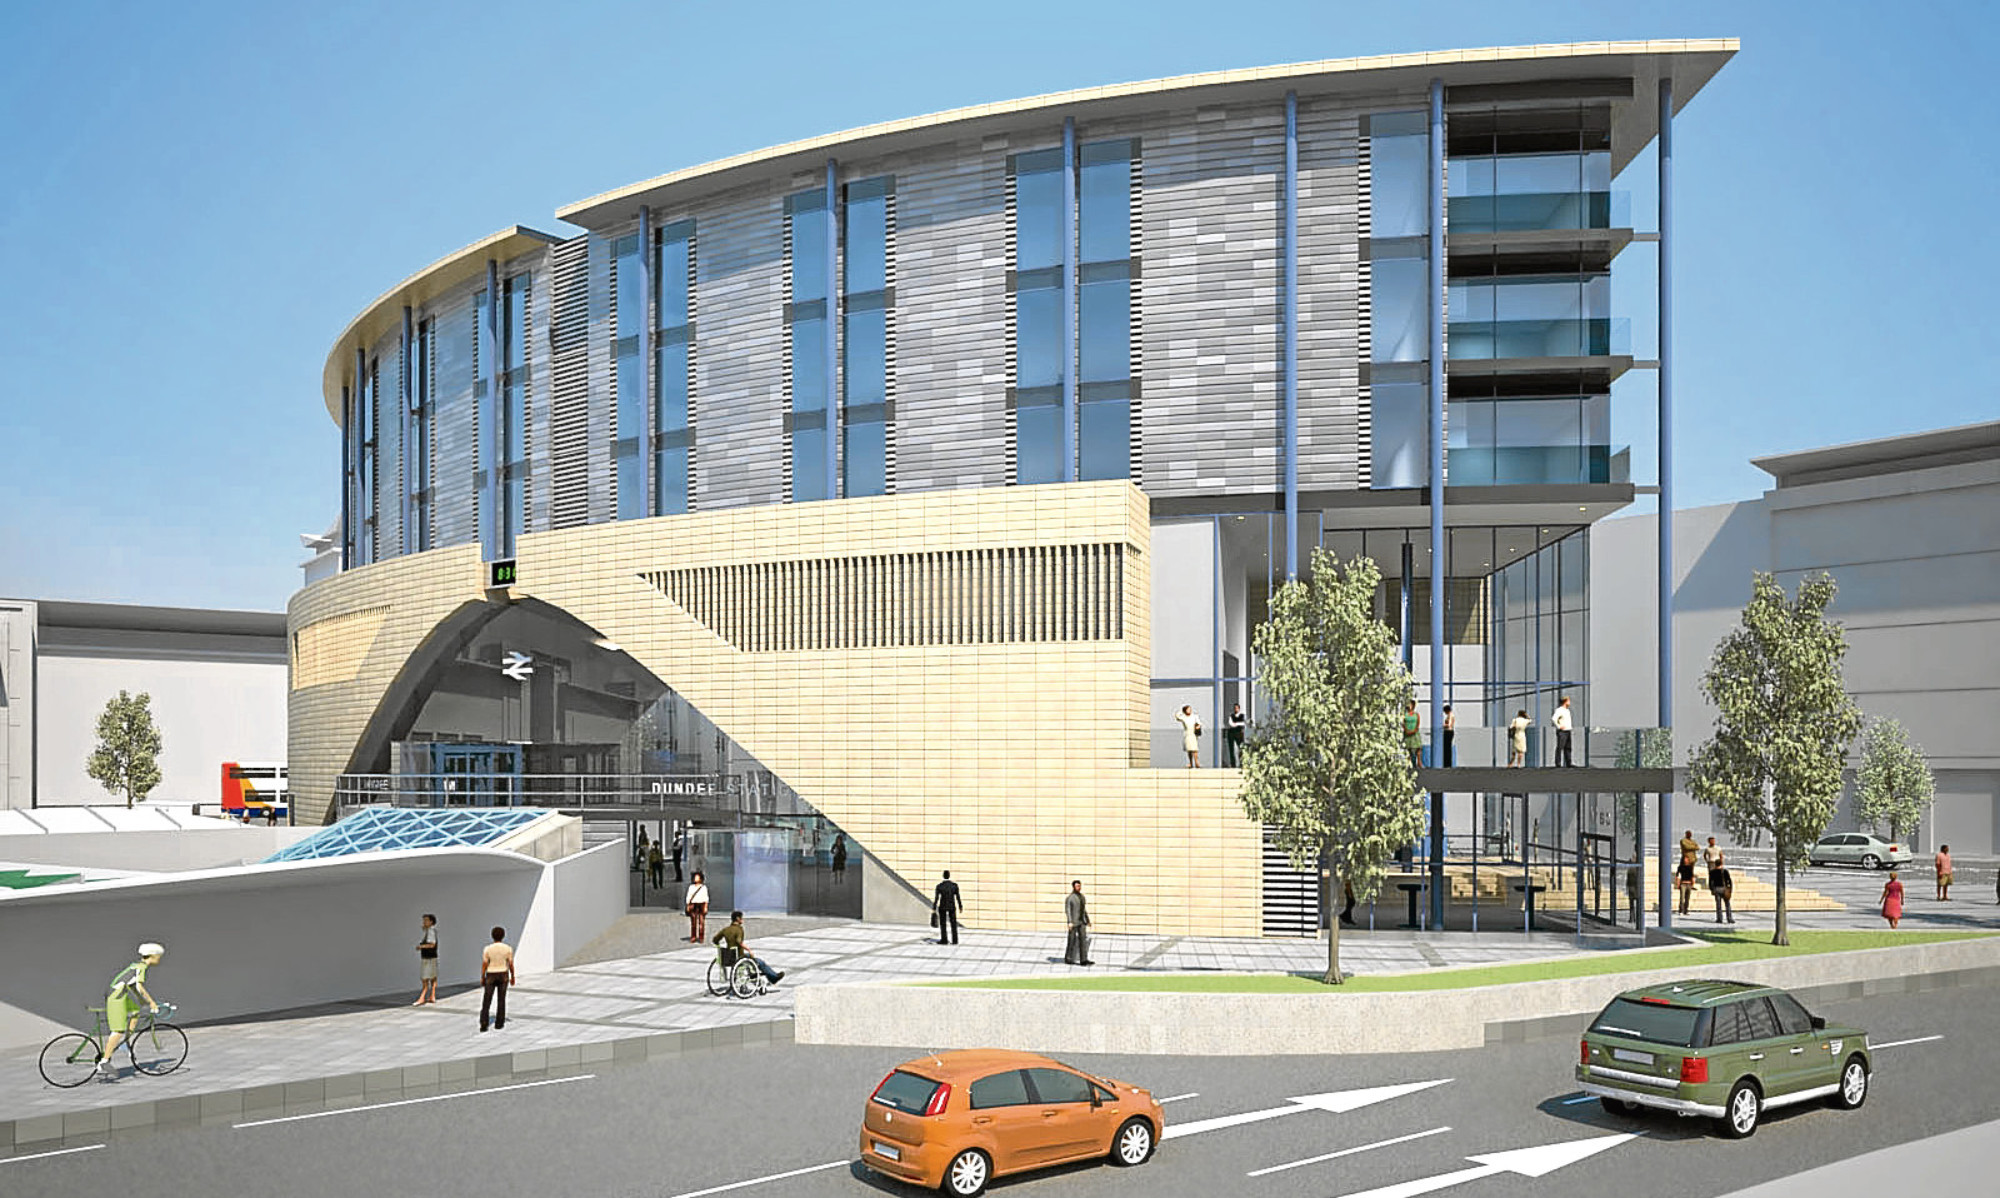 An impression of how Dundee railway station will look once the redevelopment is completed